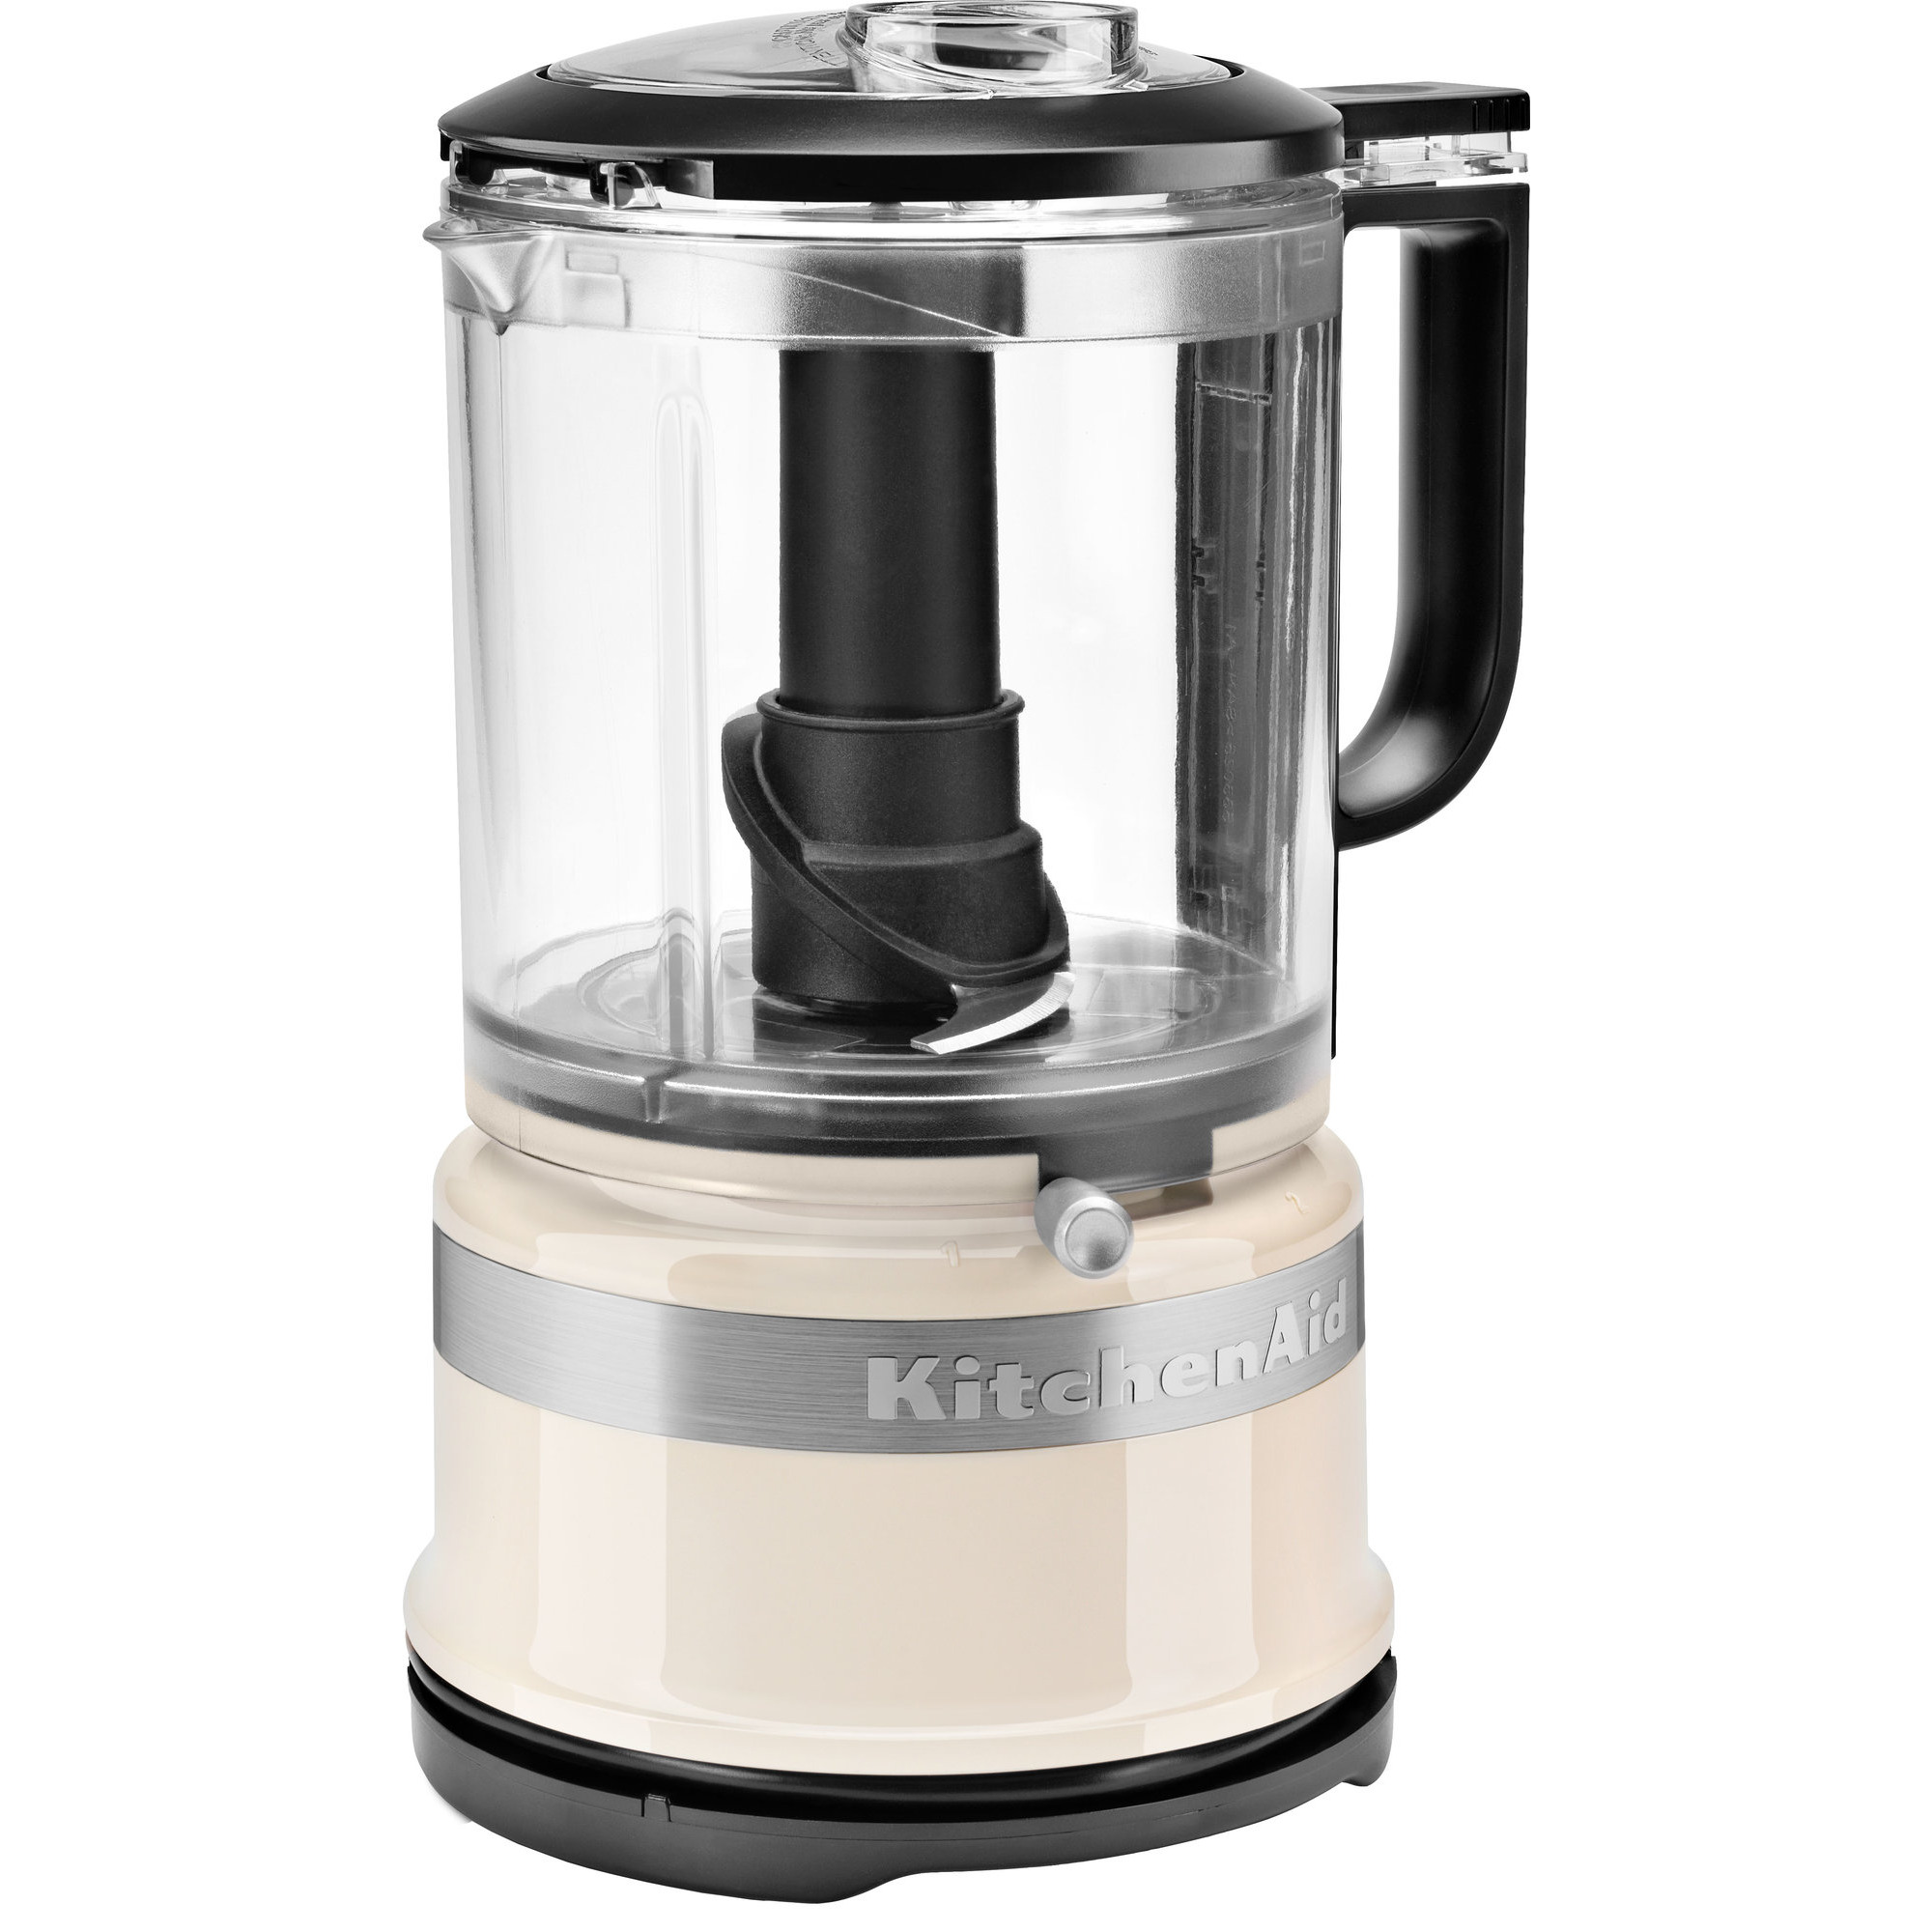 KitchenAid 5KFC0516 119 Liter Mini Matberedare